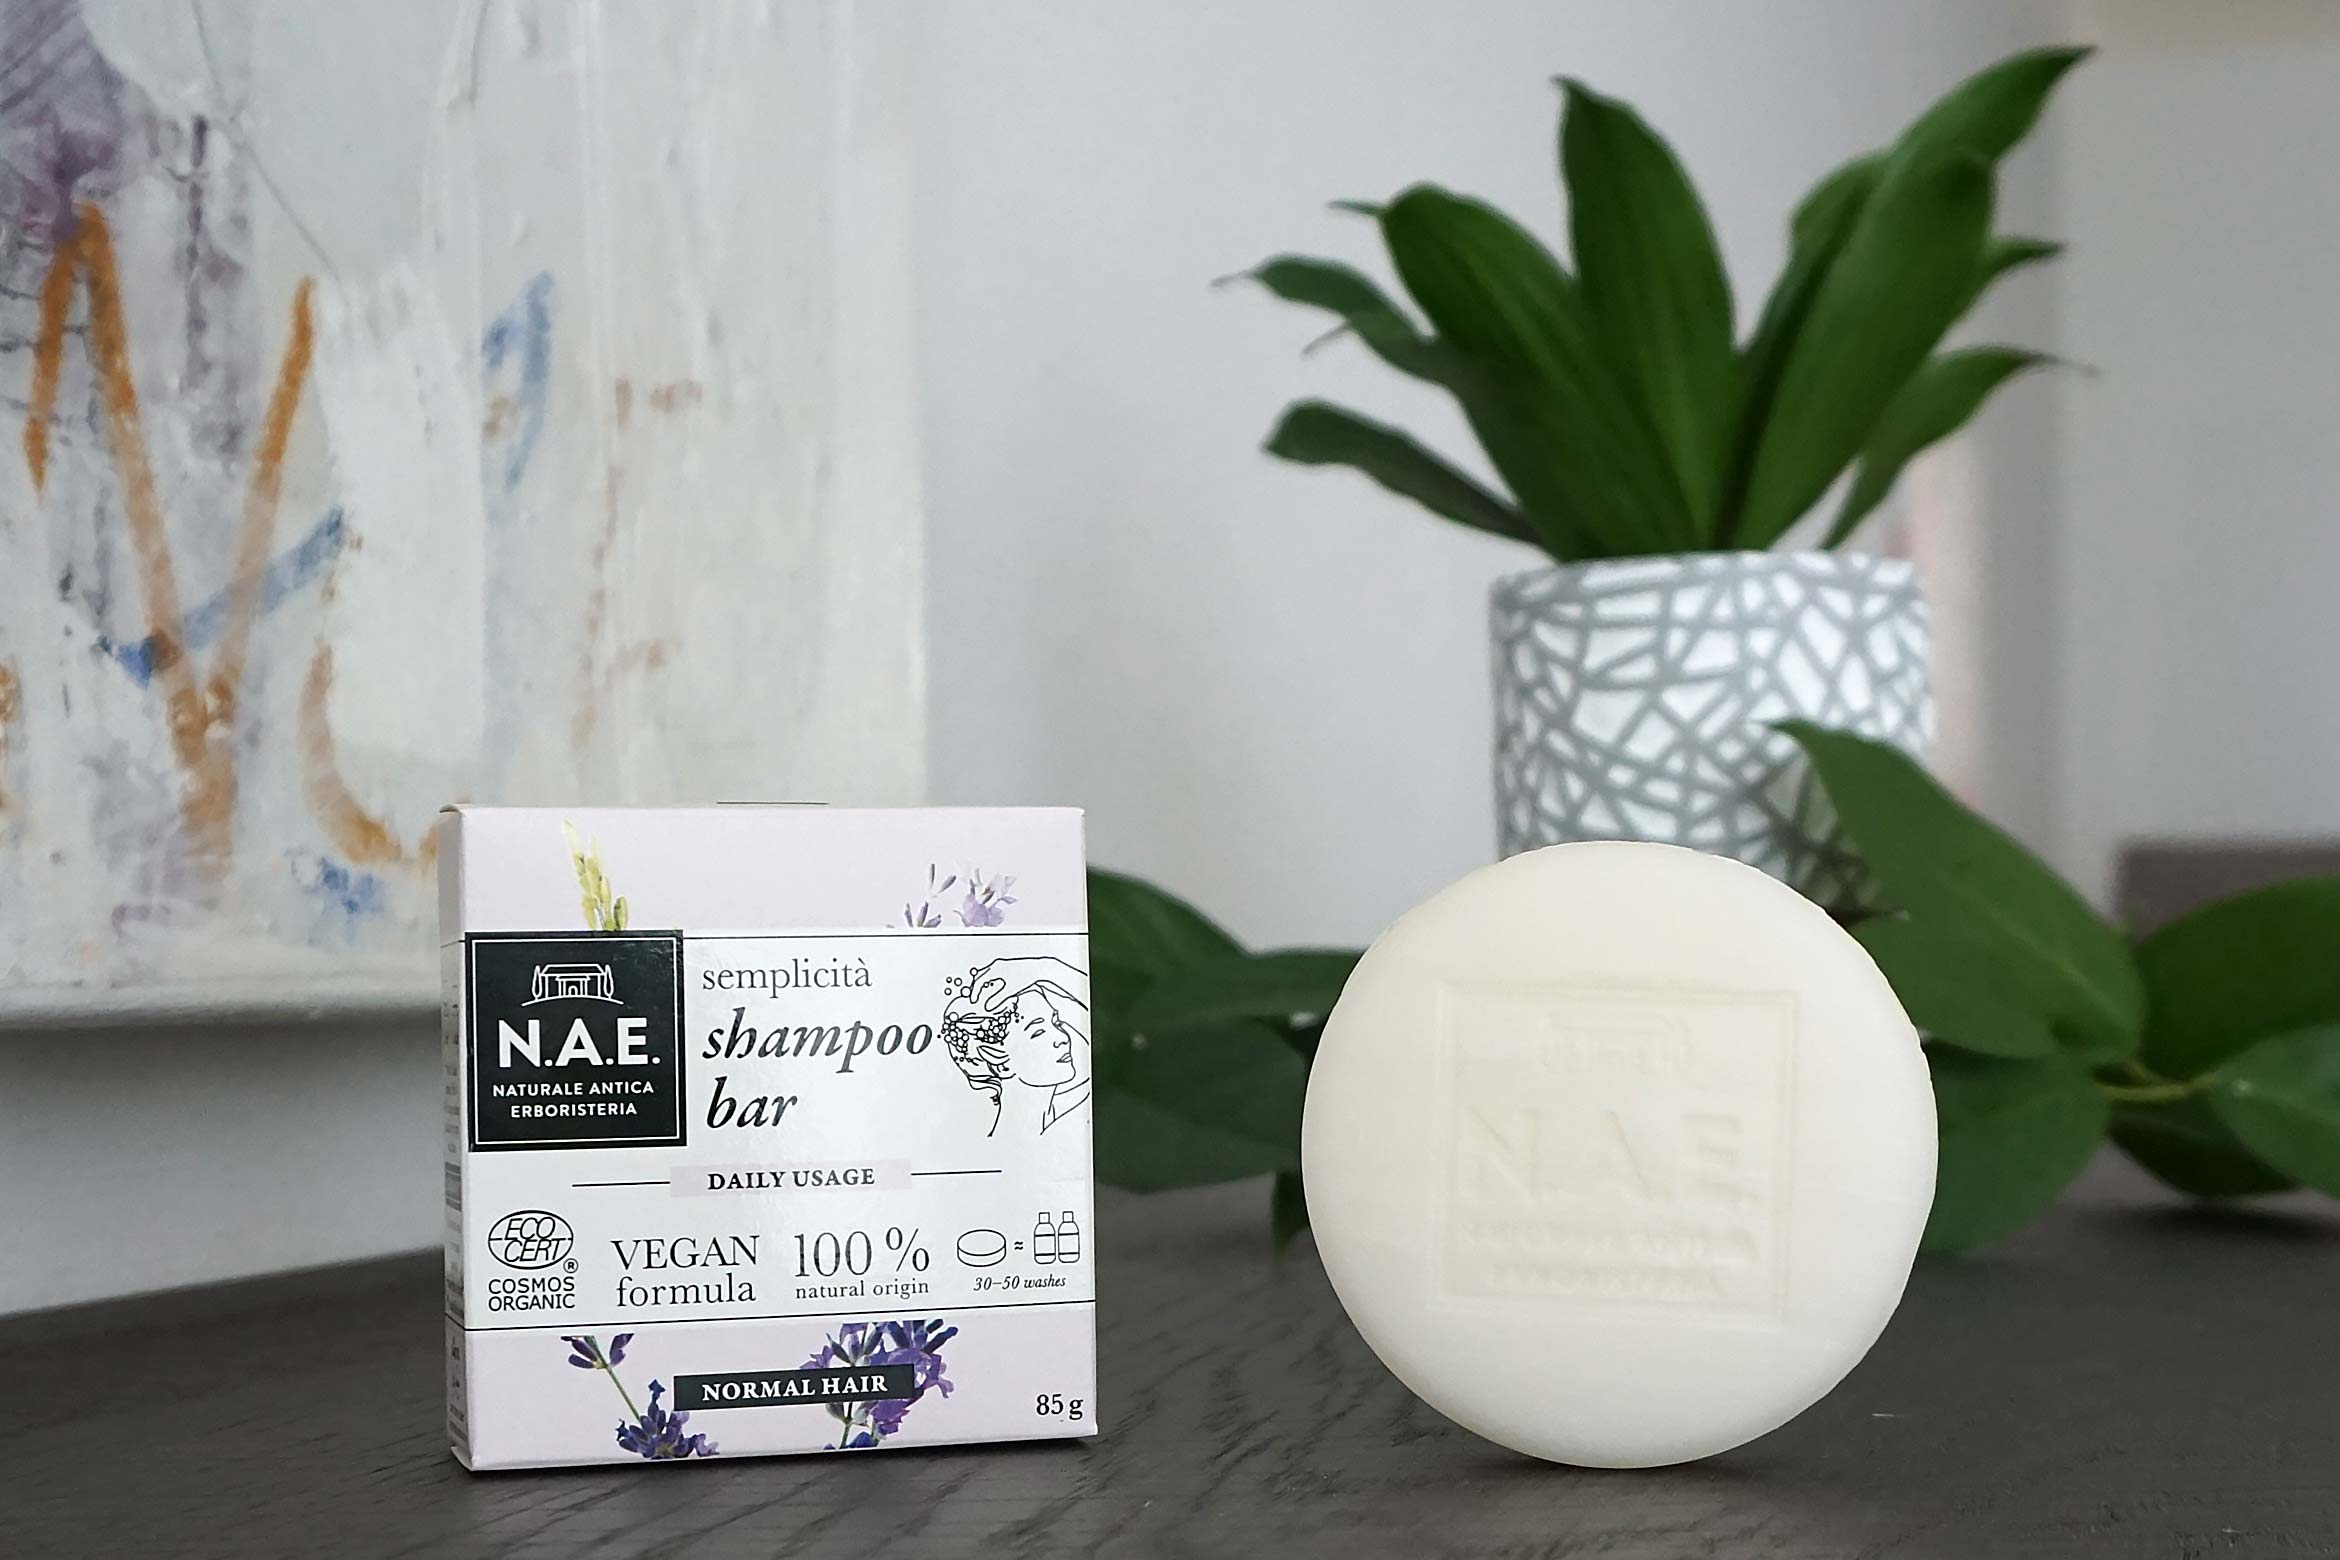 n.a.e. semplicita shampoo bar review